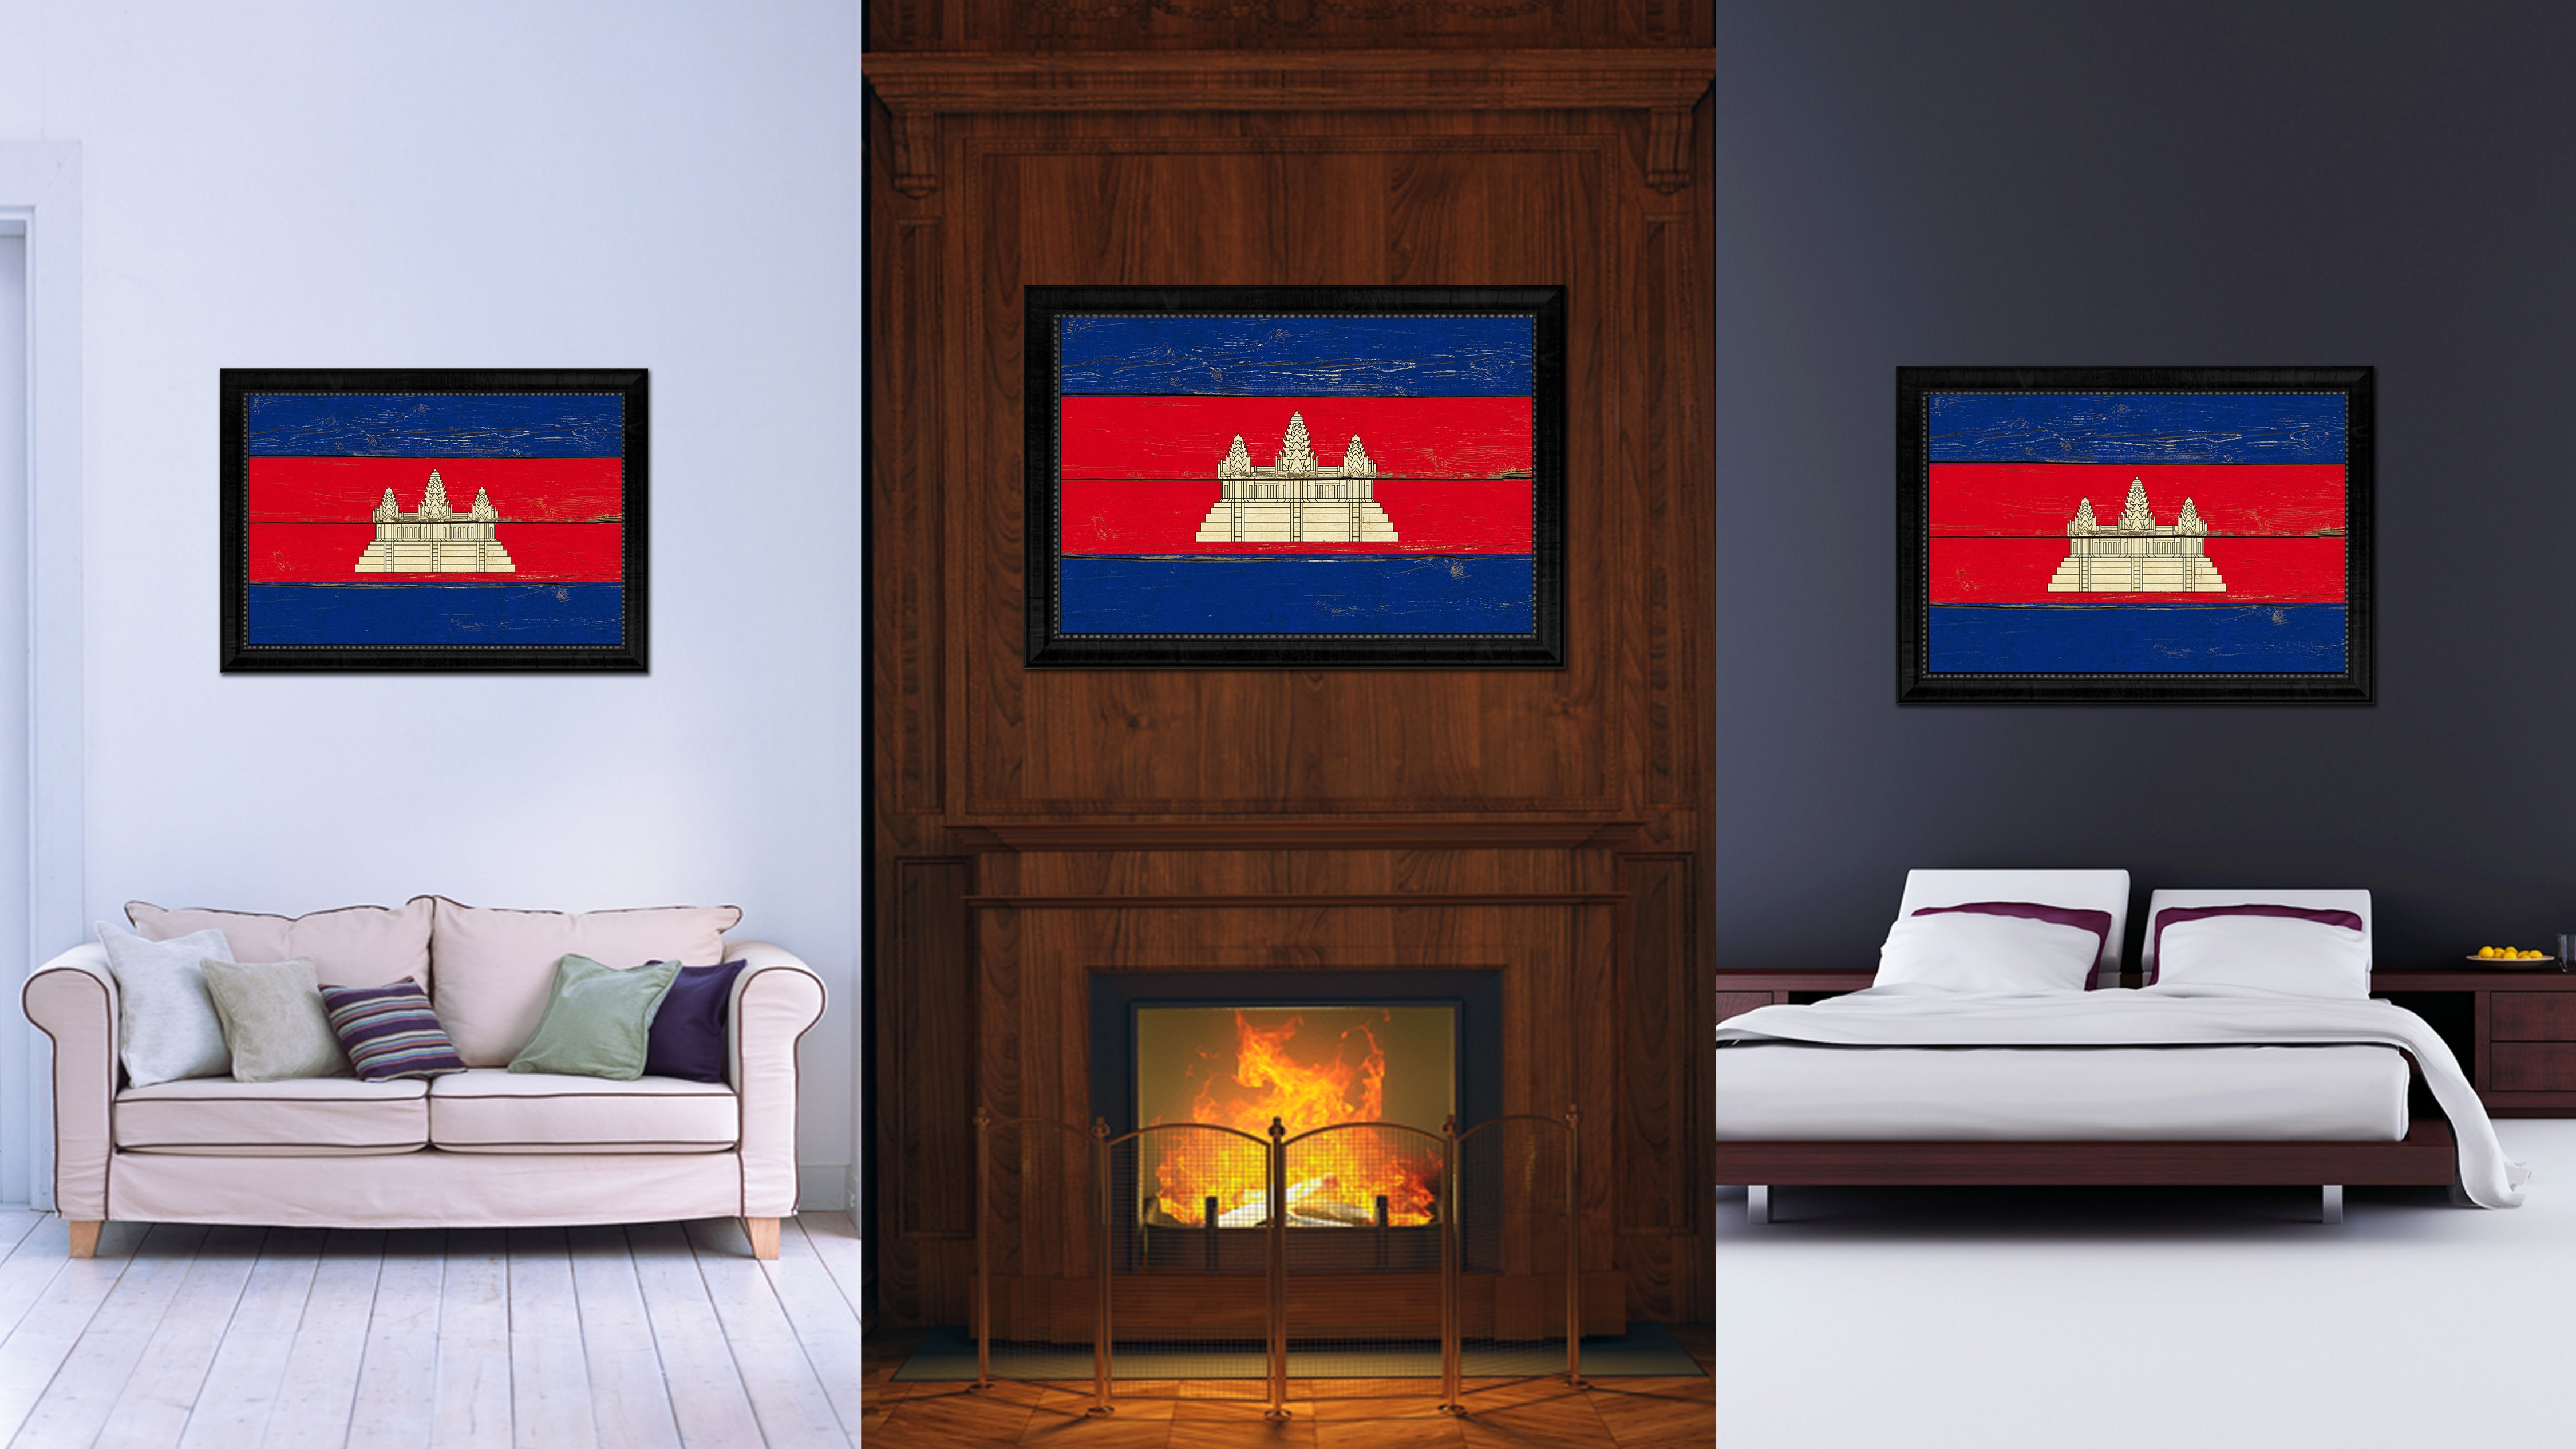 Cambodia Country Flag Vintage Canvas Print with Black Picture Frame Home Decor Gifts Wall Art Decoration Artwork